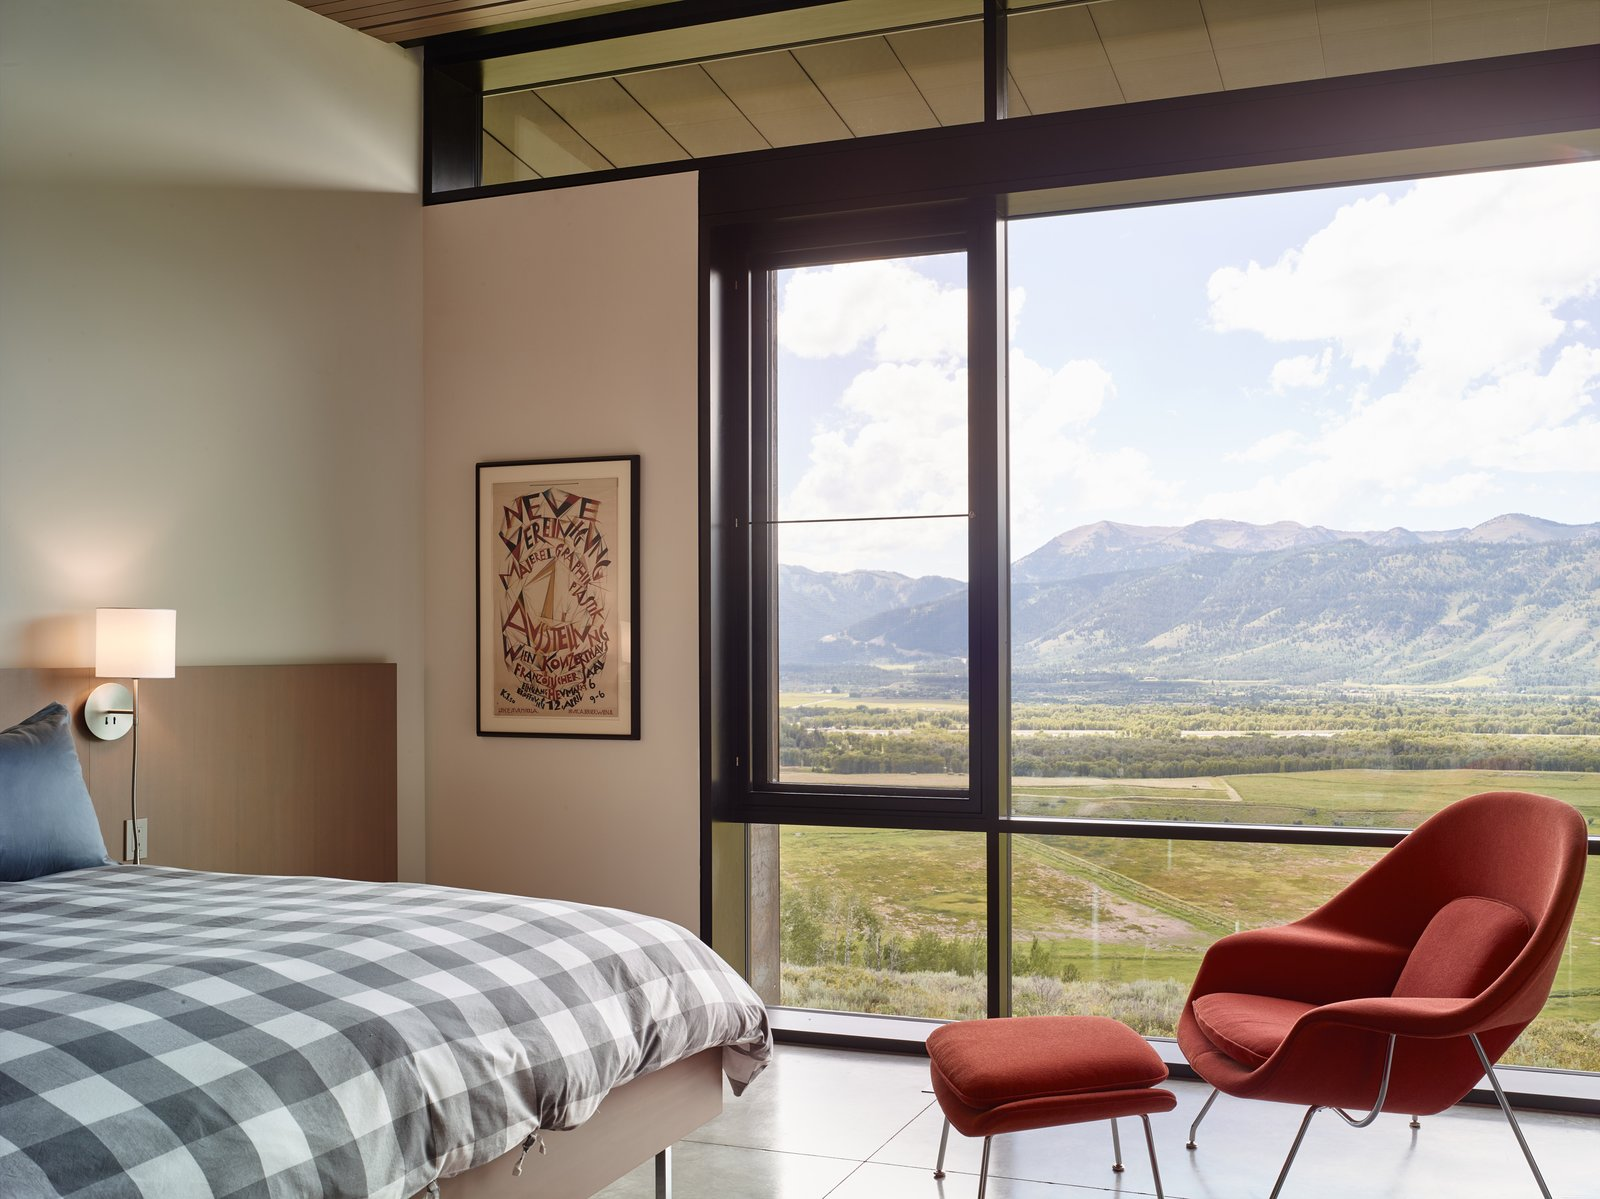 Bedroom, Bed, Chair, Concrete Floor, and Wall Lighting Windows in the guest bedrooms allow the ceiling to rest gently.   Wyoming Residence by Abramson Teiger Architects